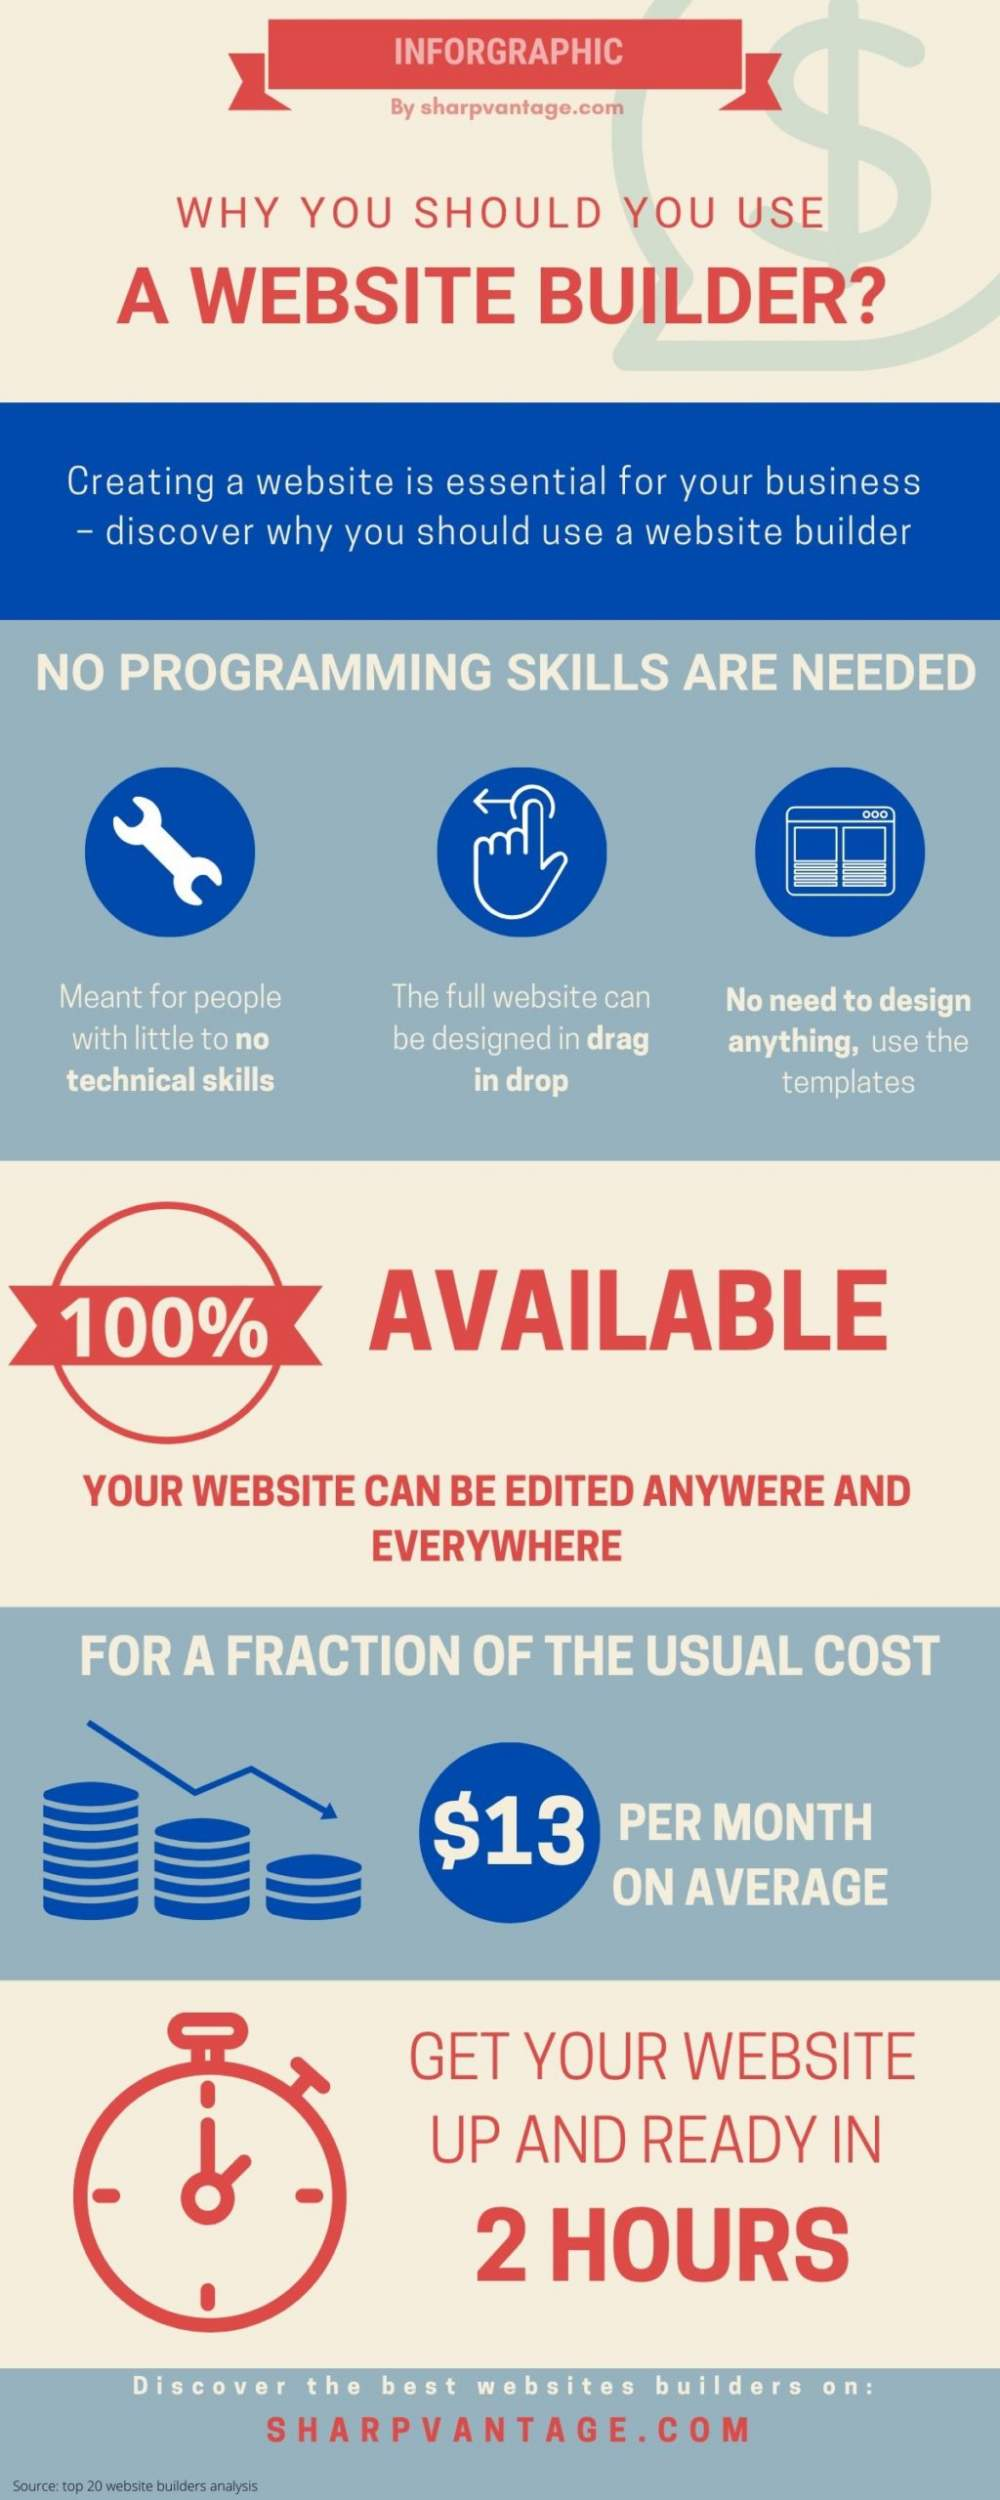 Why using a website builder